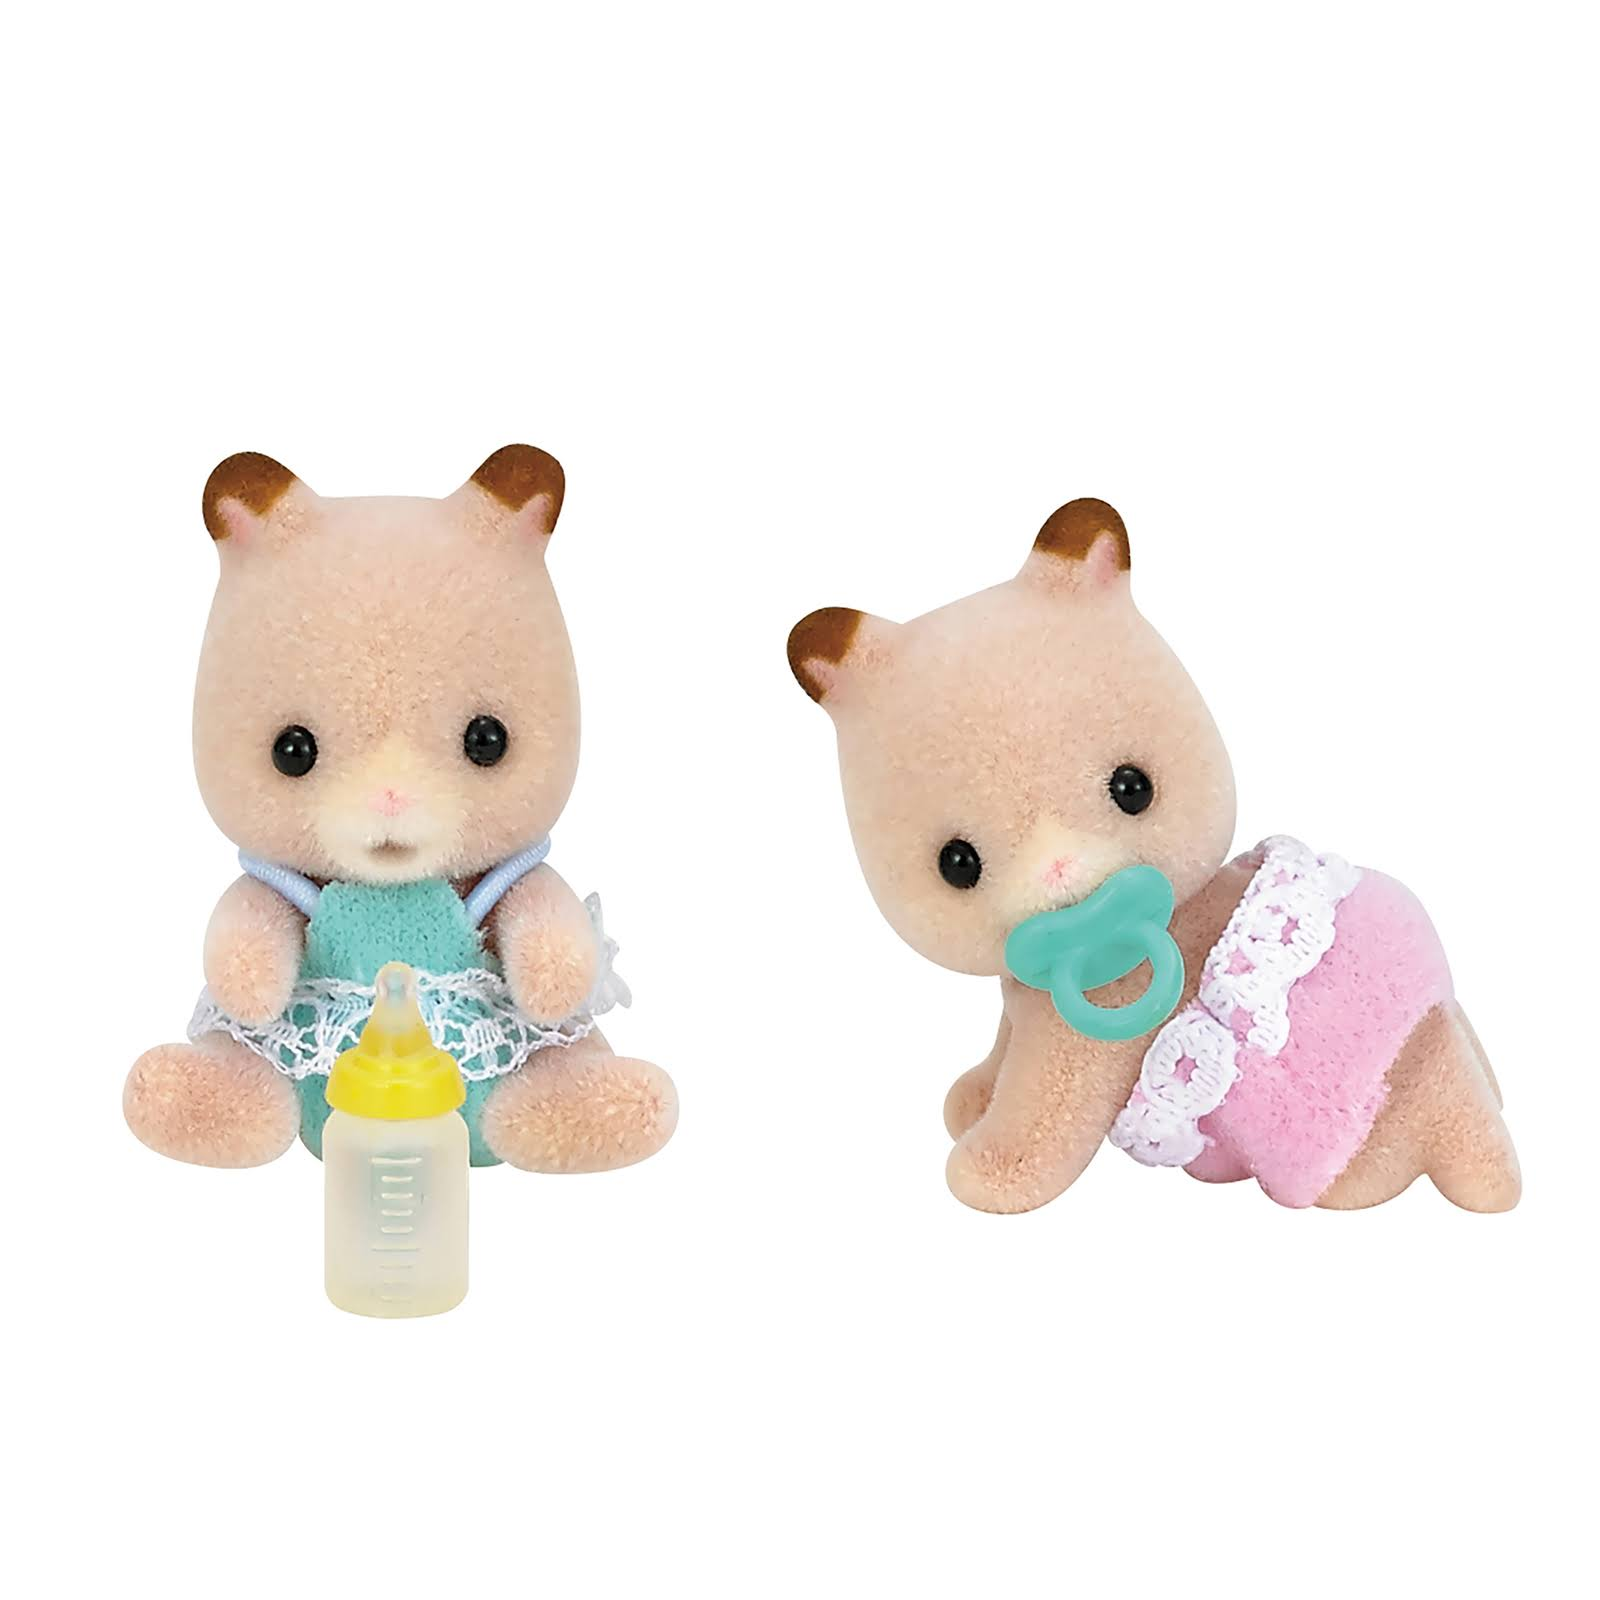 Calico Critters Fluffy Hamster Twins Play Set